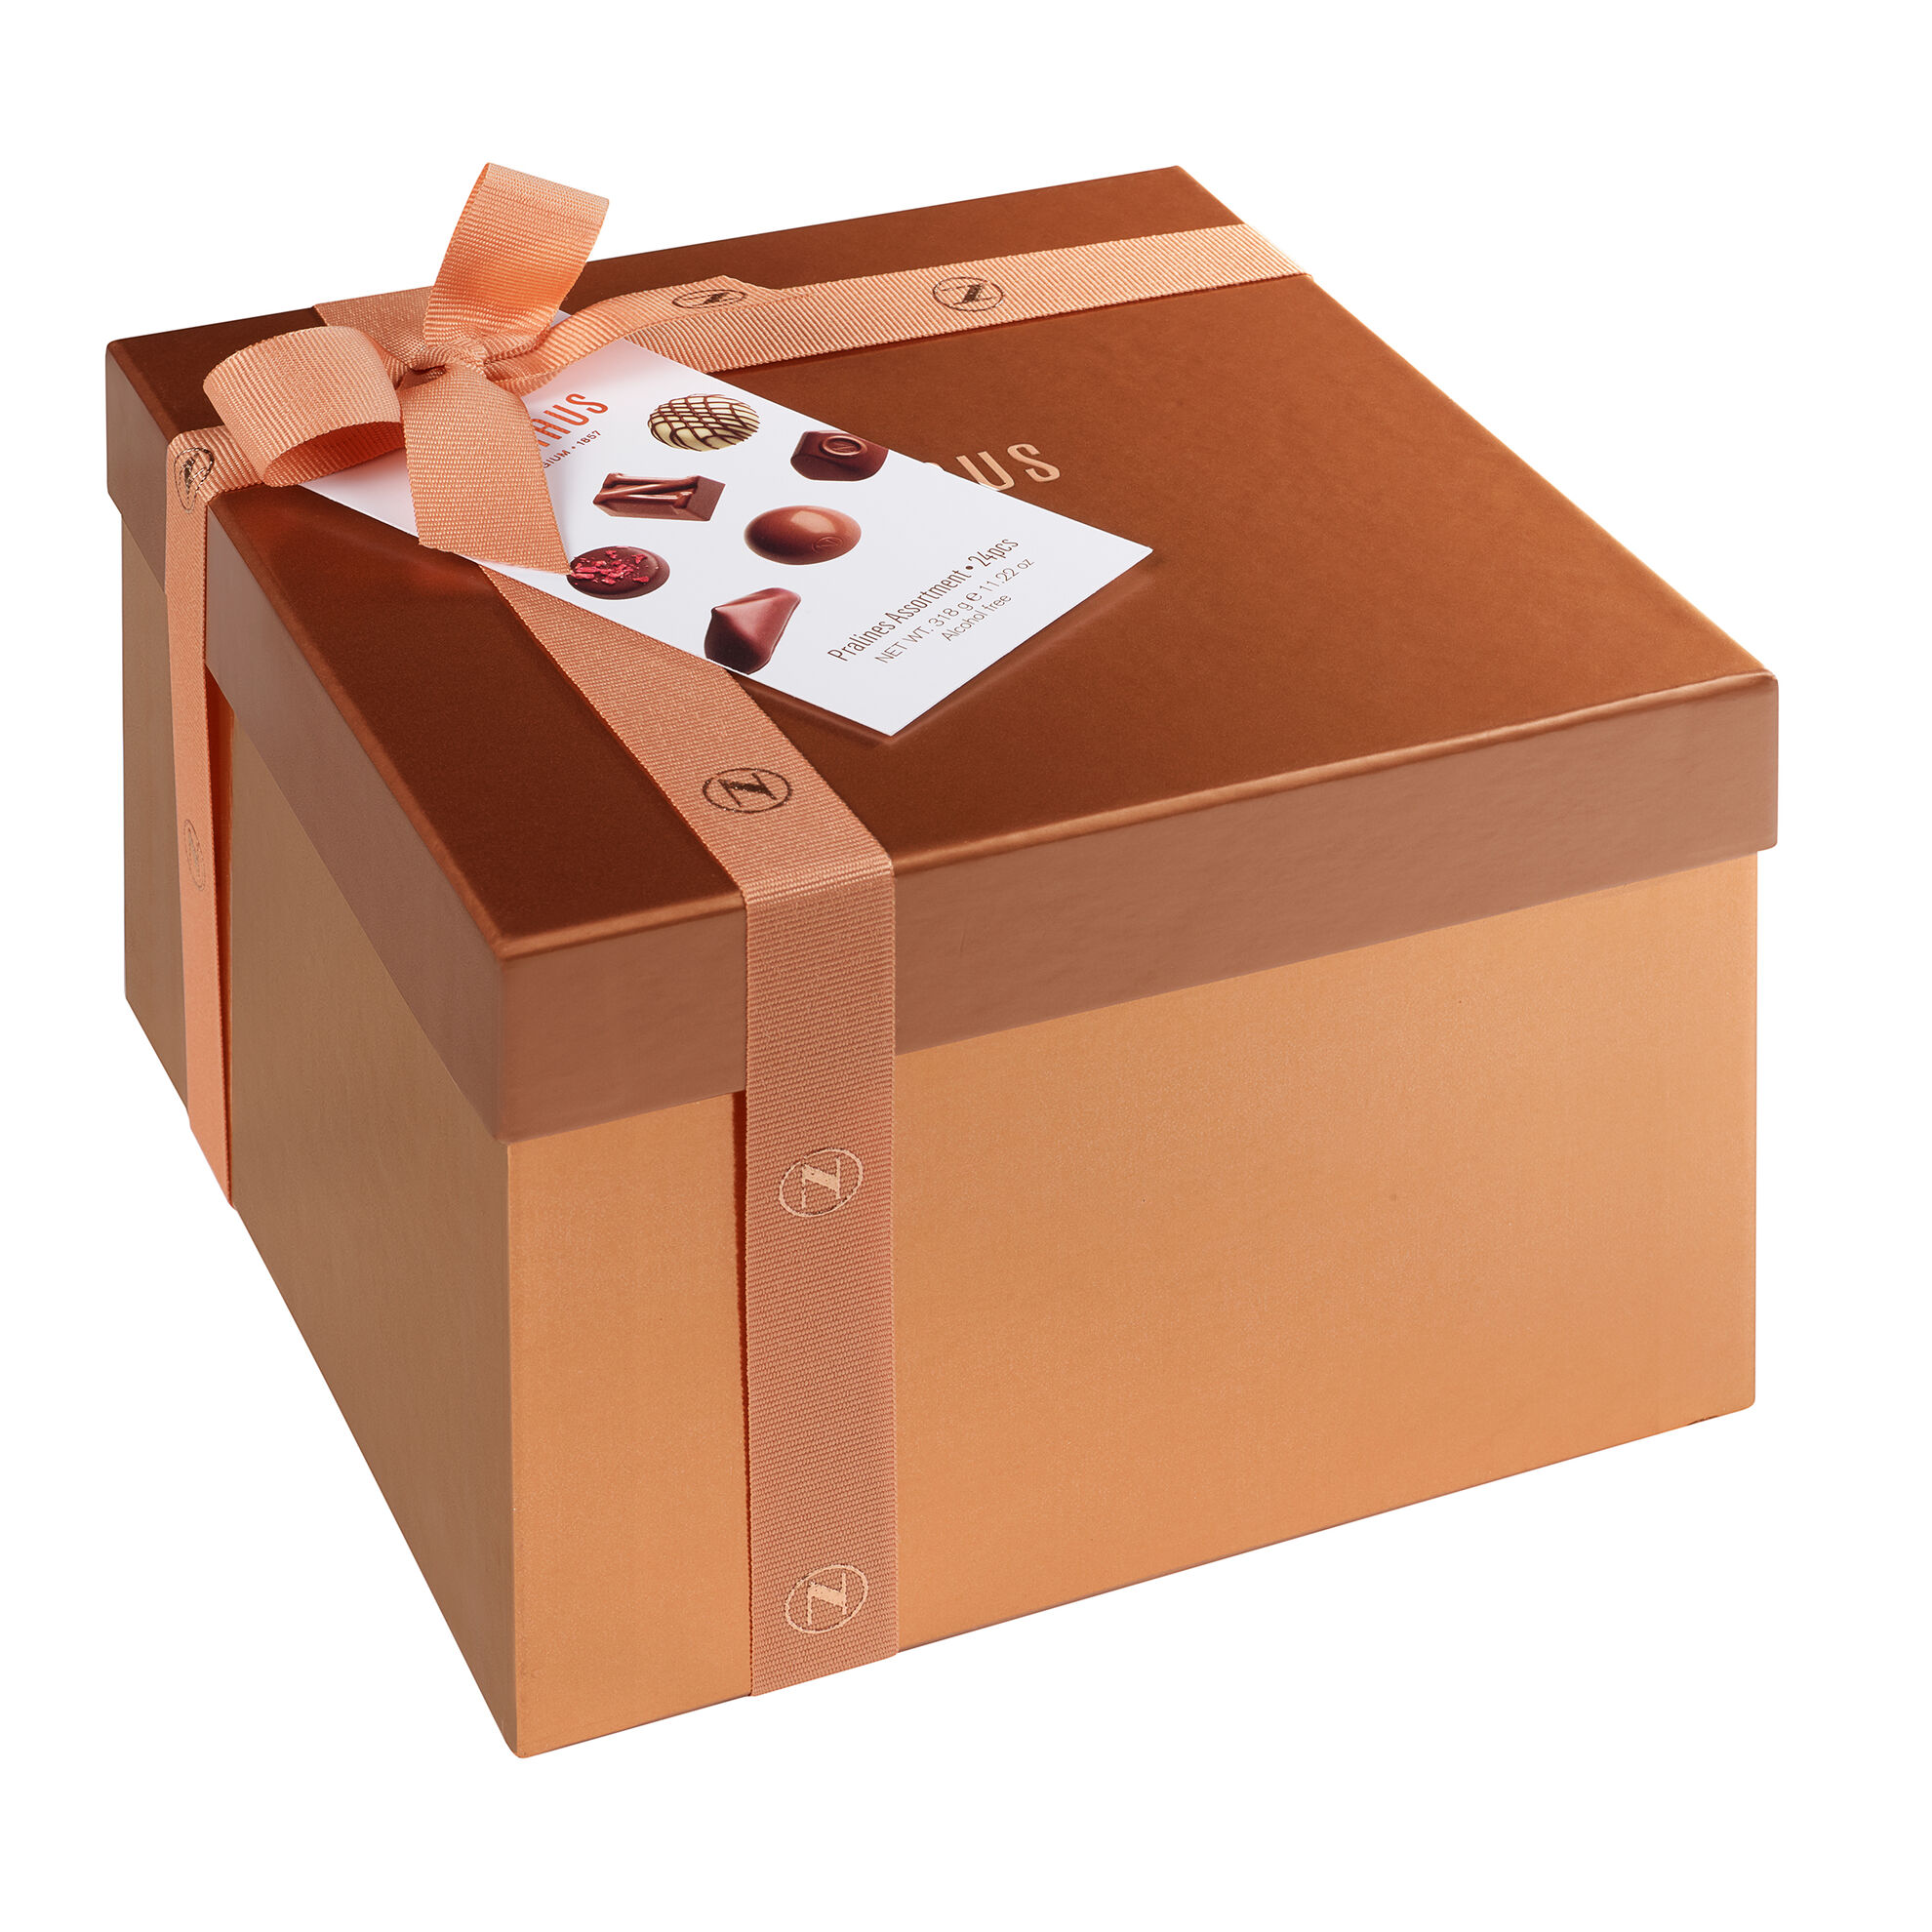 Large Square Gift Box With Ribbon 24 pcs image number 11